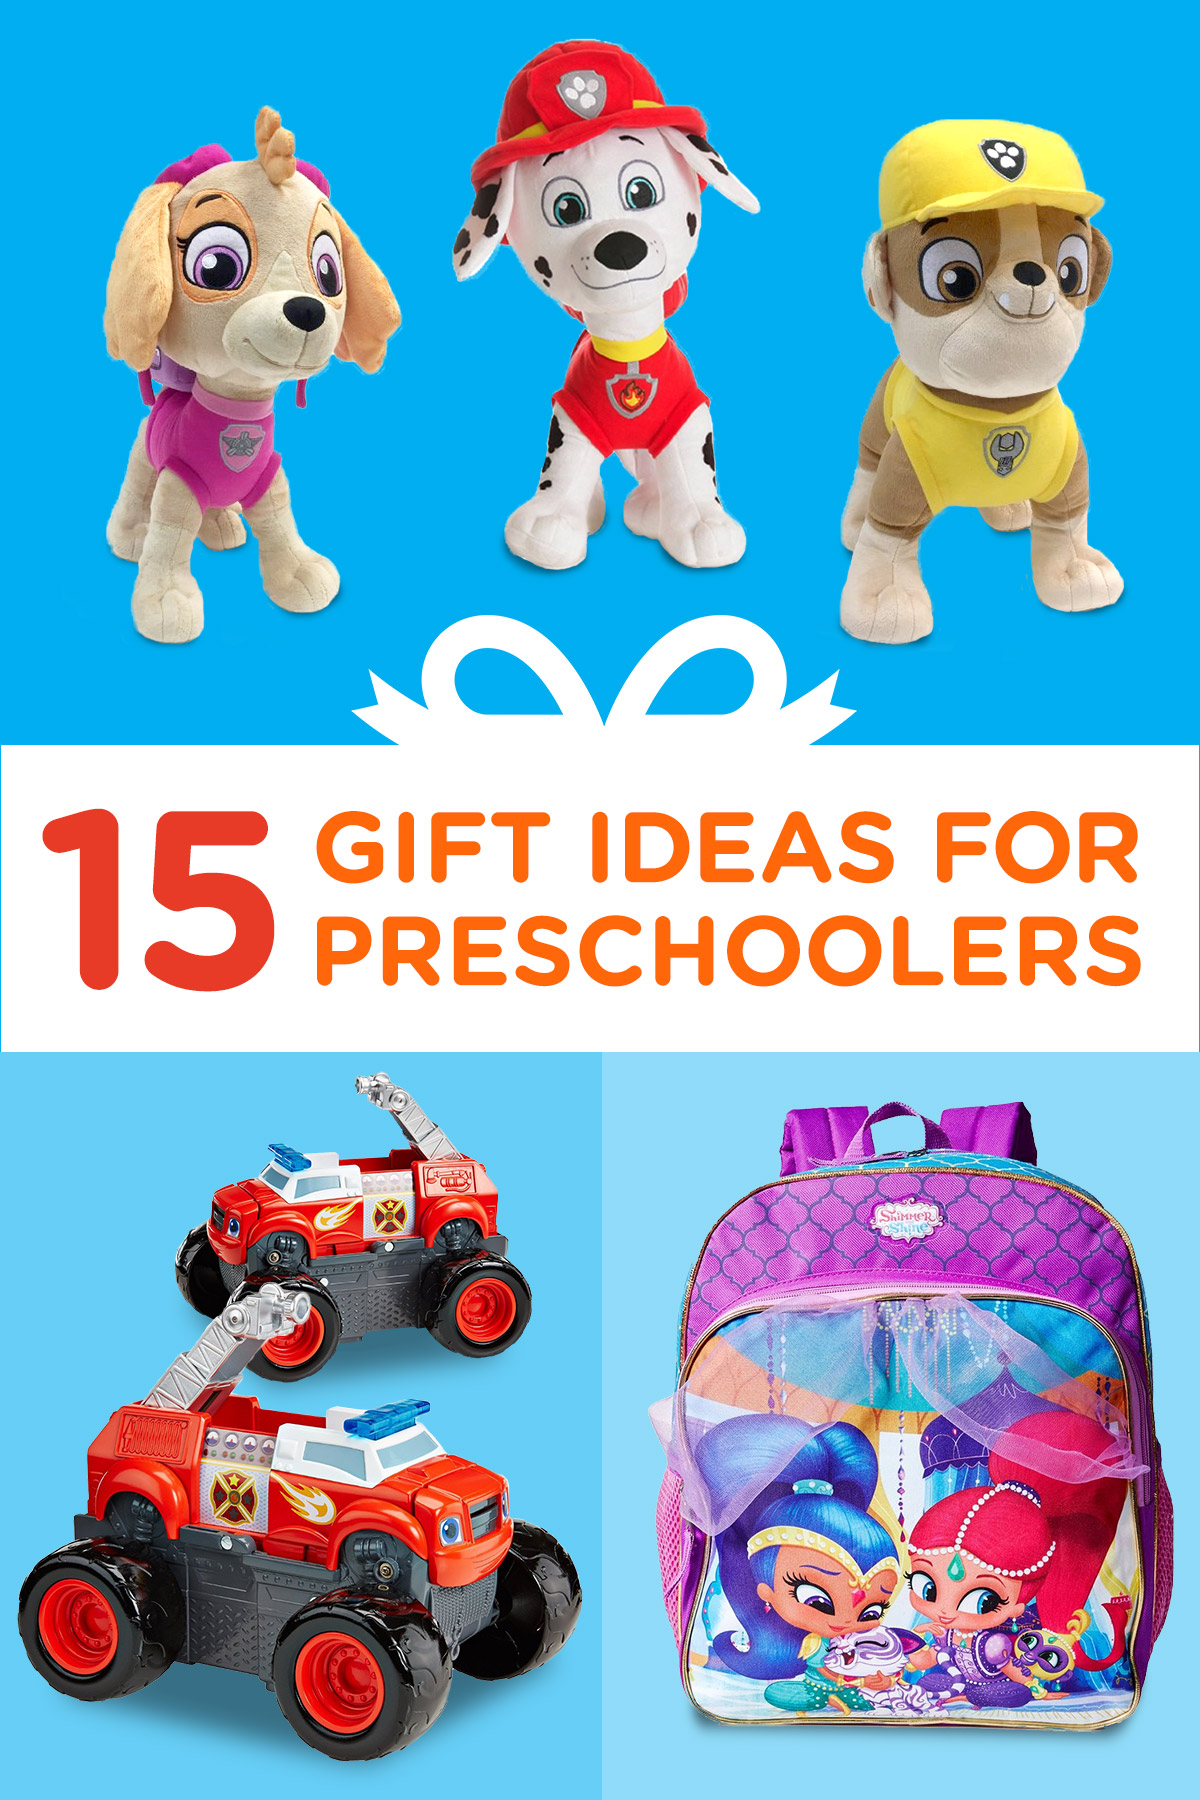 15 Birthday Gift Ideas for Preschoolers